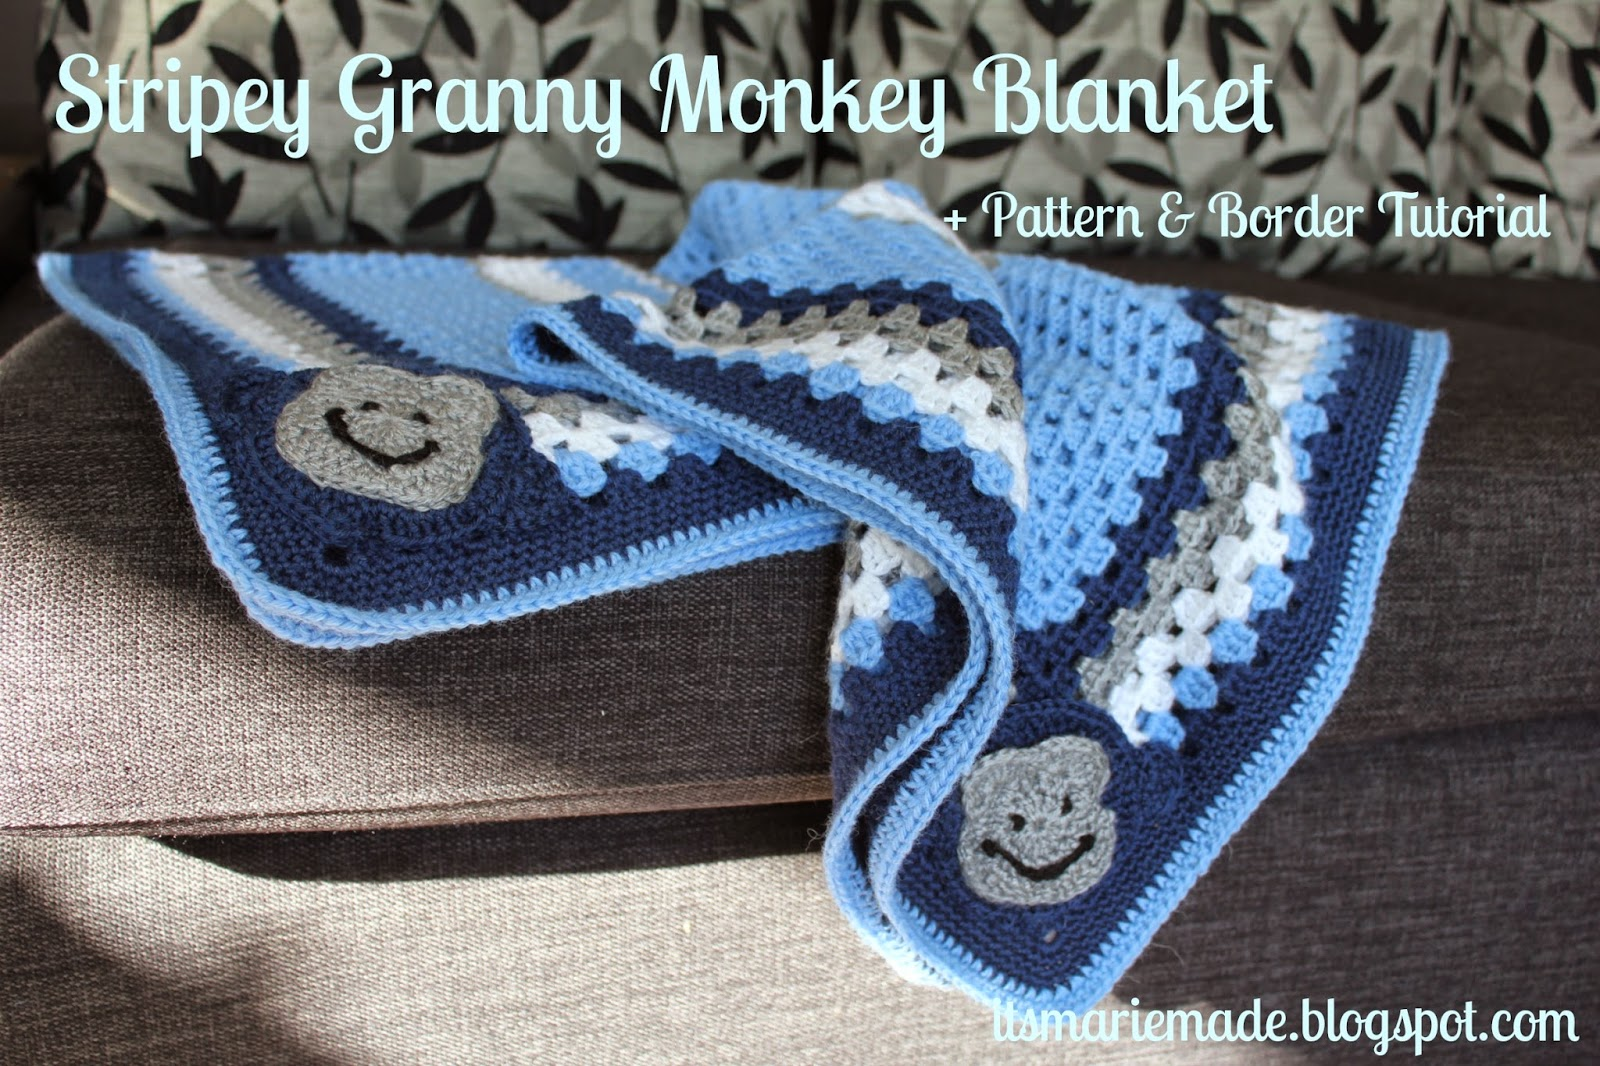 Its marie made stripey crochet granny monkey blanket pattern as soon as i found out my brother in law and his wife were having a baby i knew i wanted to make a blanket for the new addition bankloansurffo Images